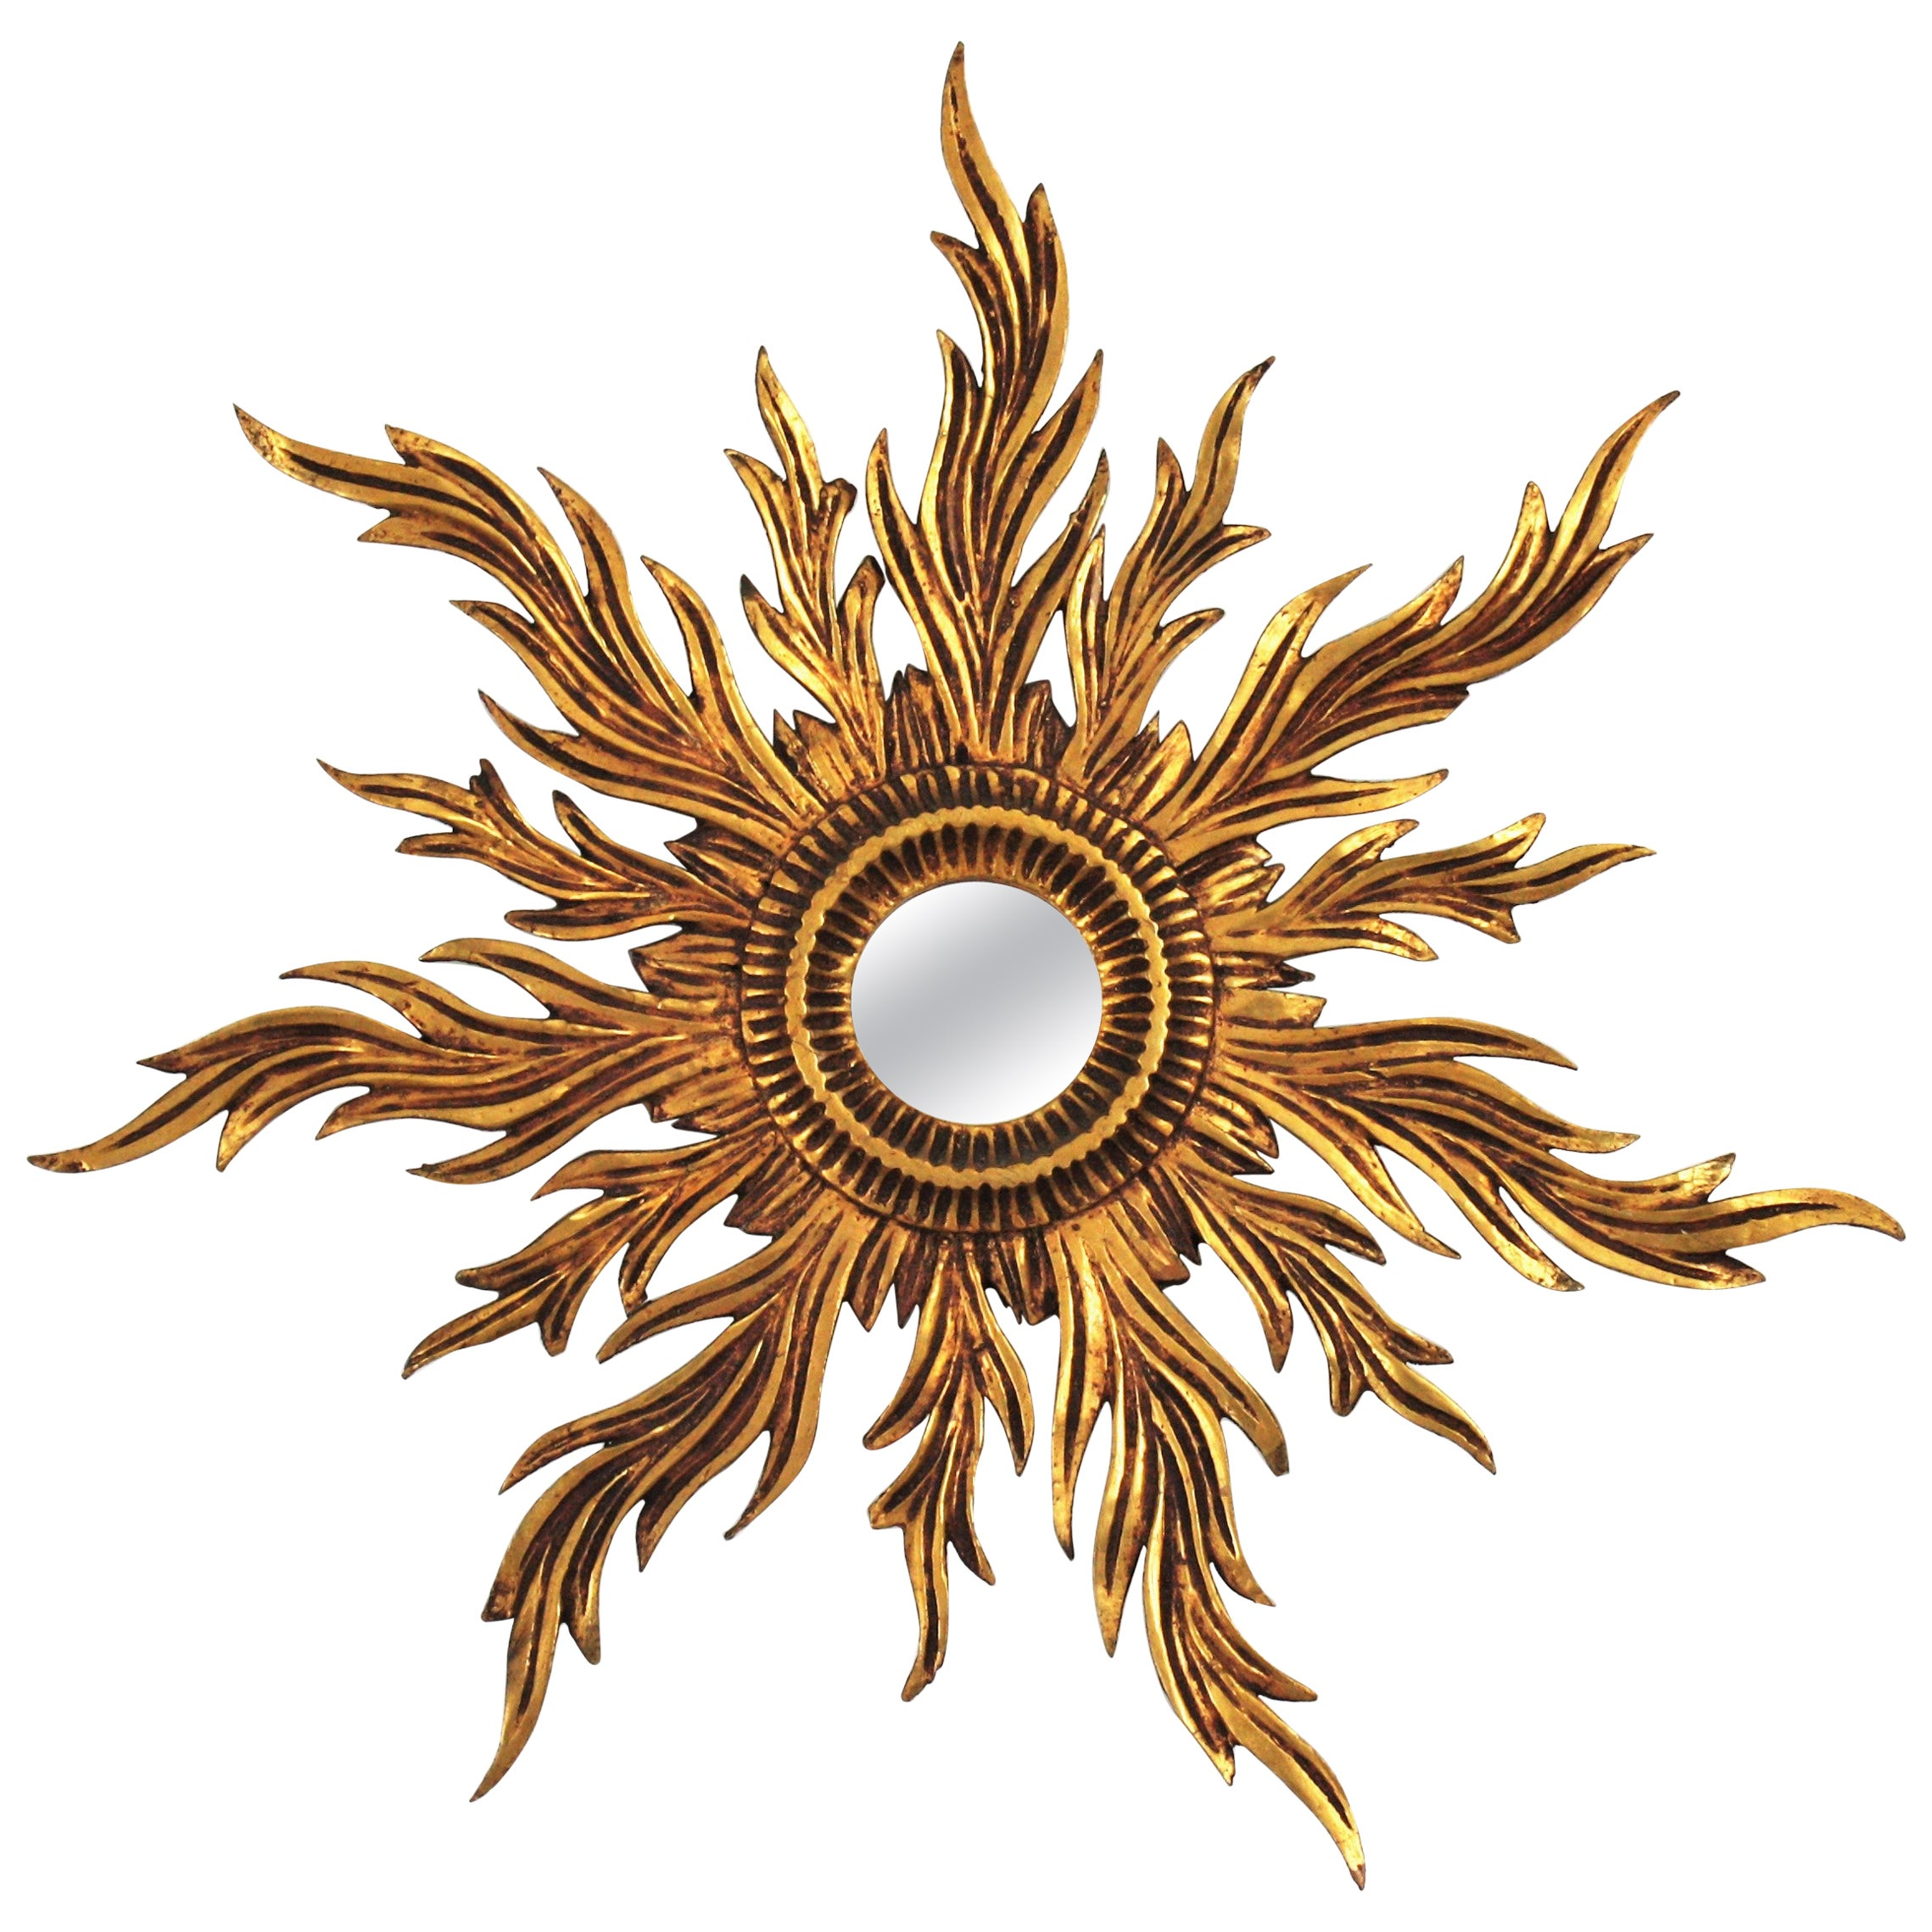 French Sunburst Giltwood Mirror, Early 20th Century